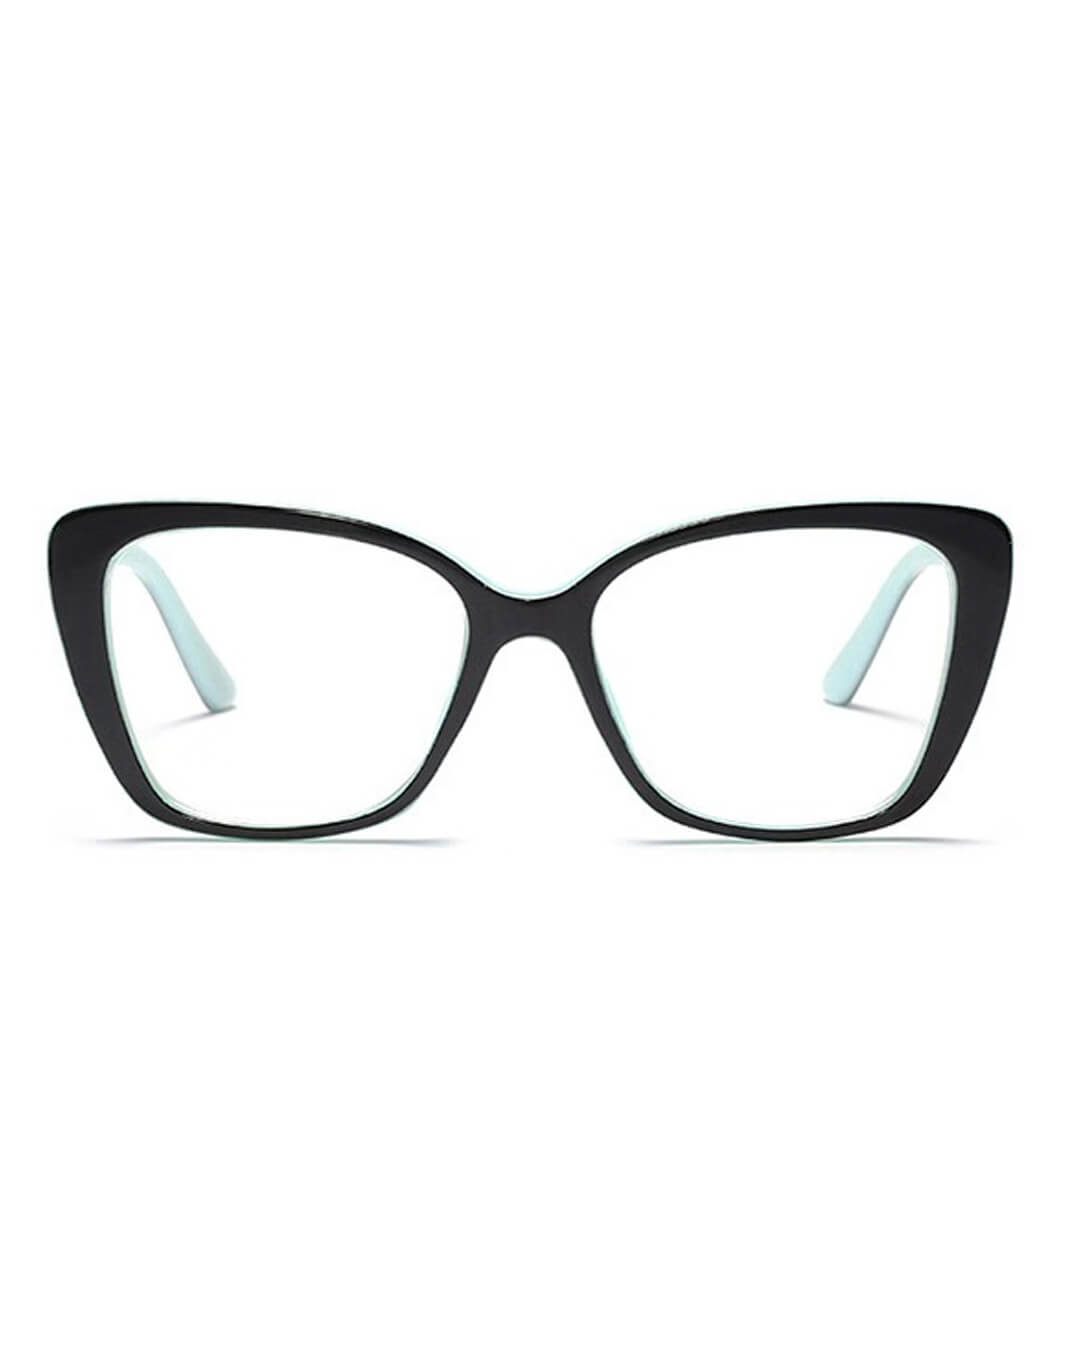 Tiffany-Opticals---Blue-